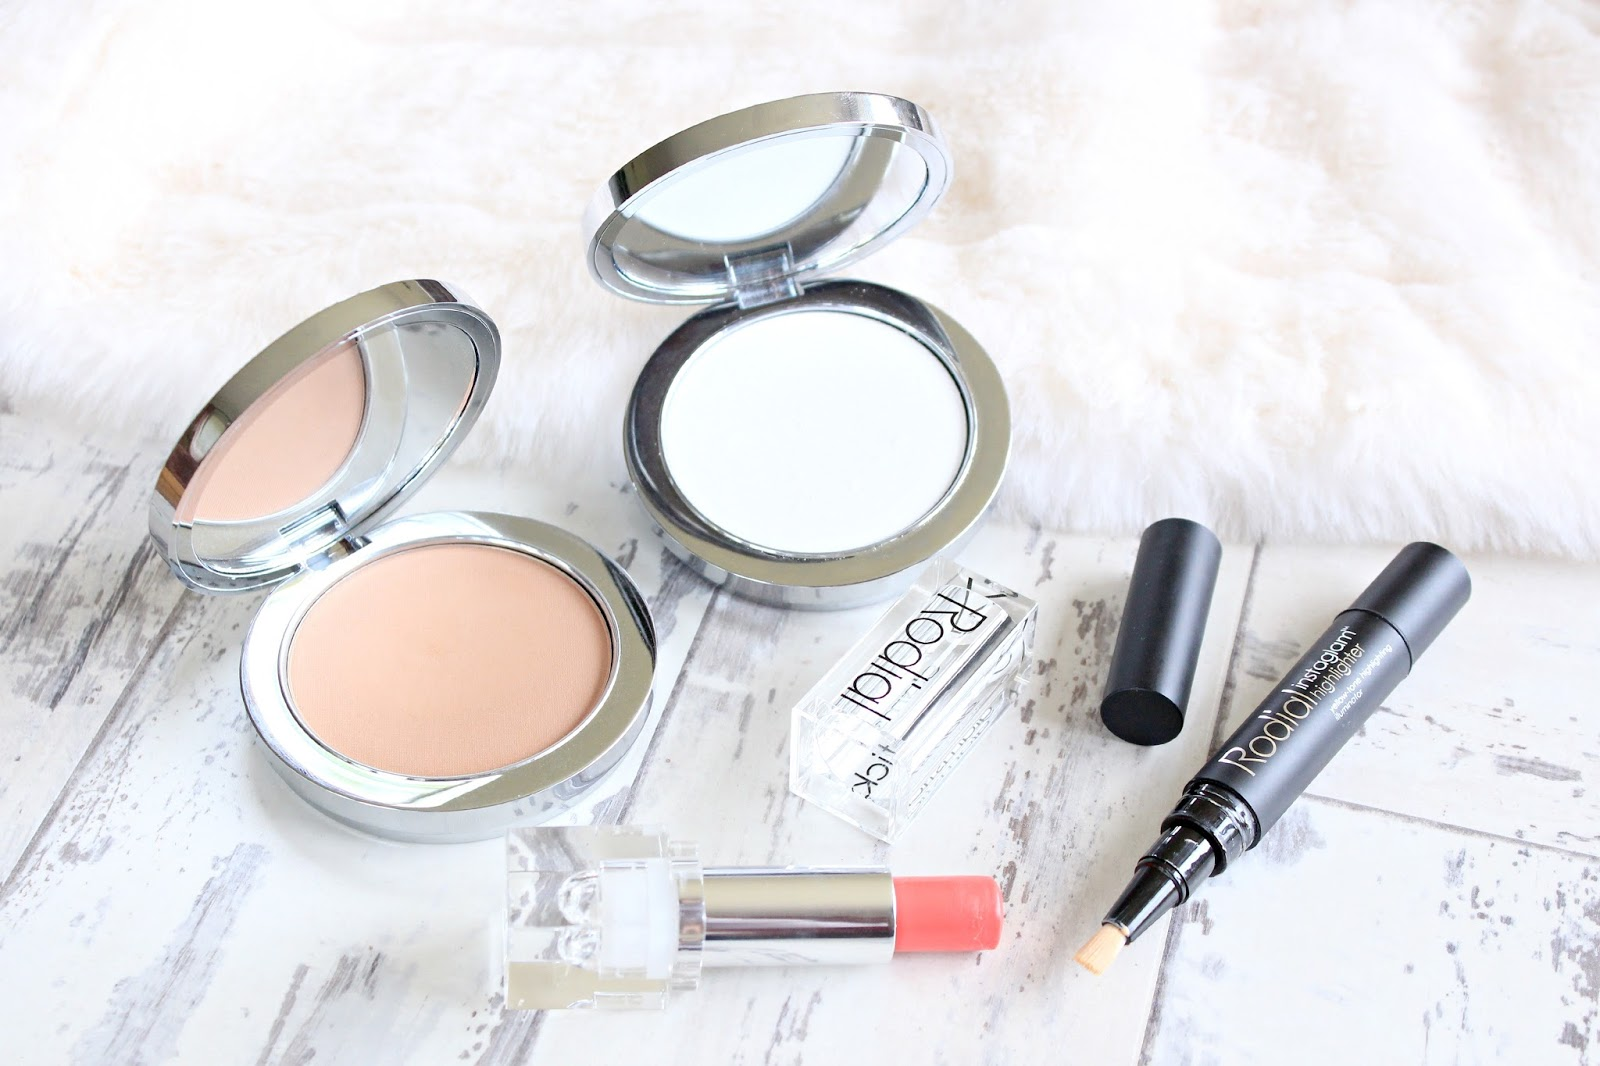 rodial makeup review